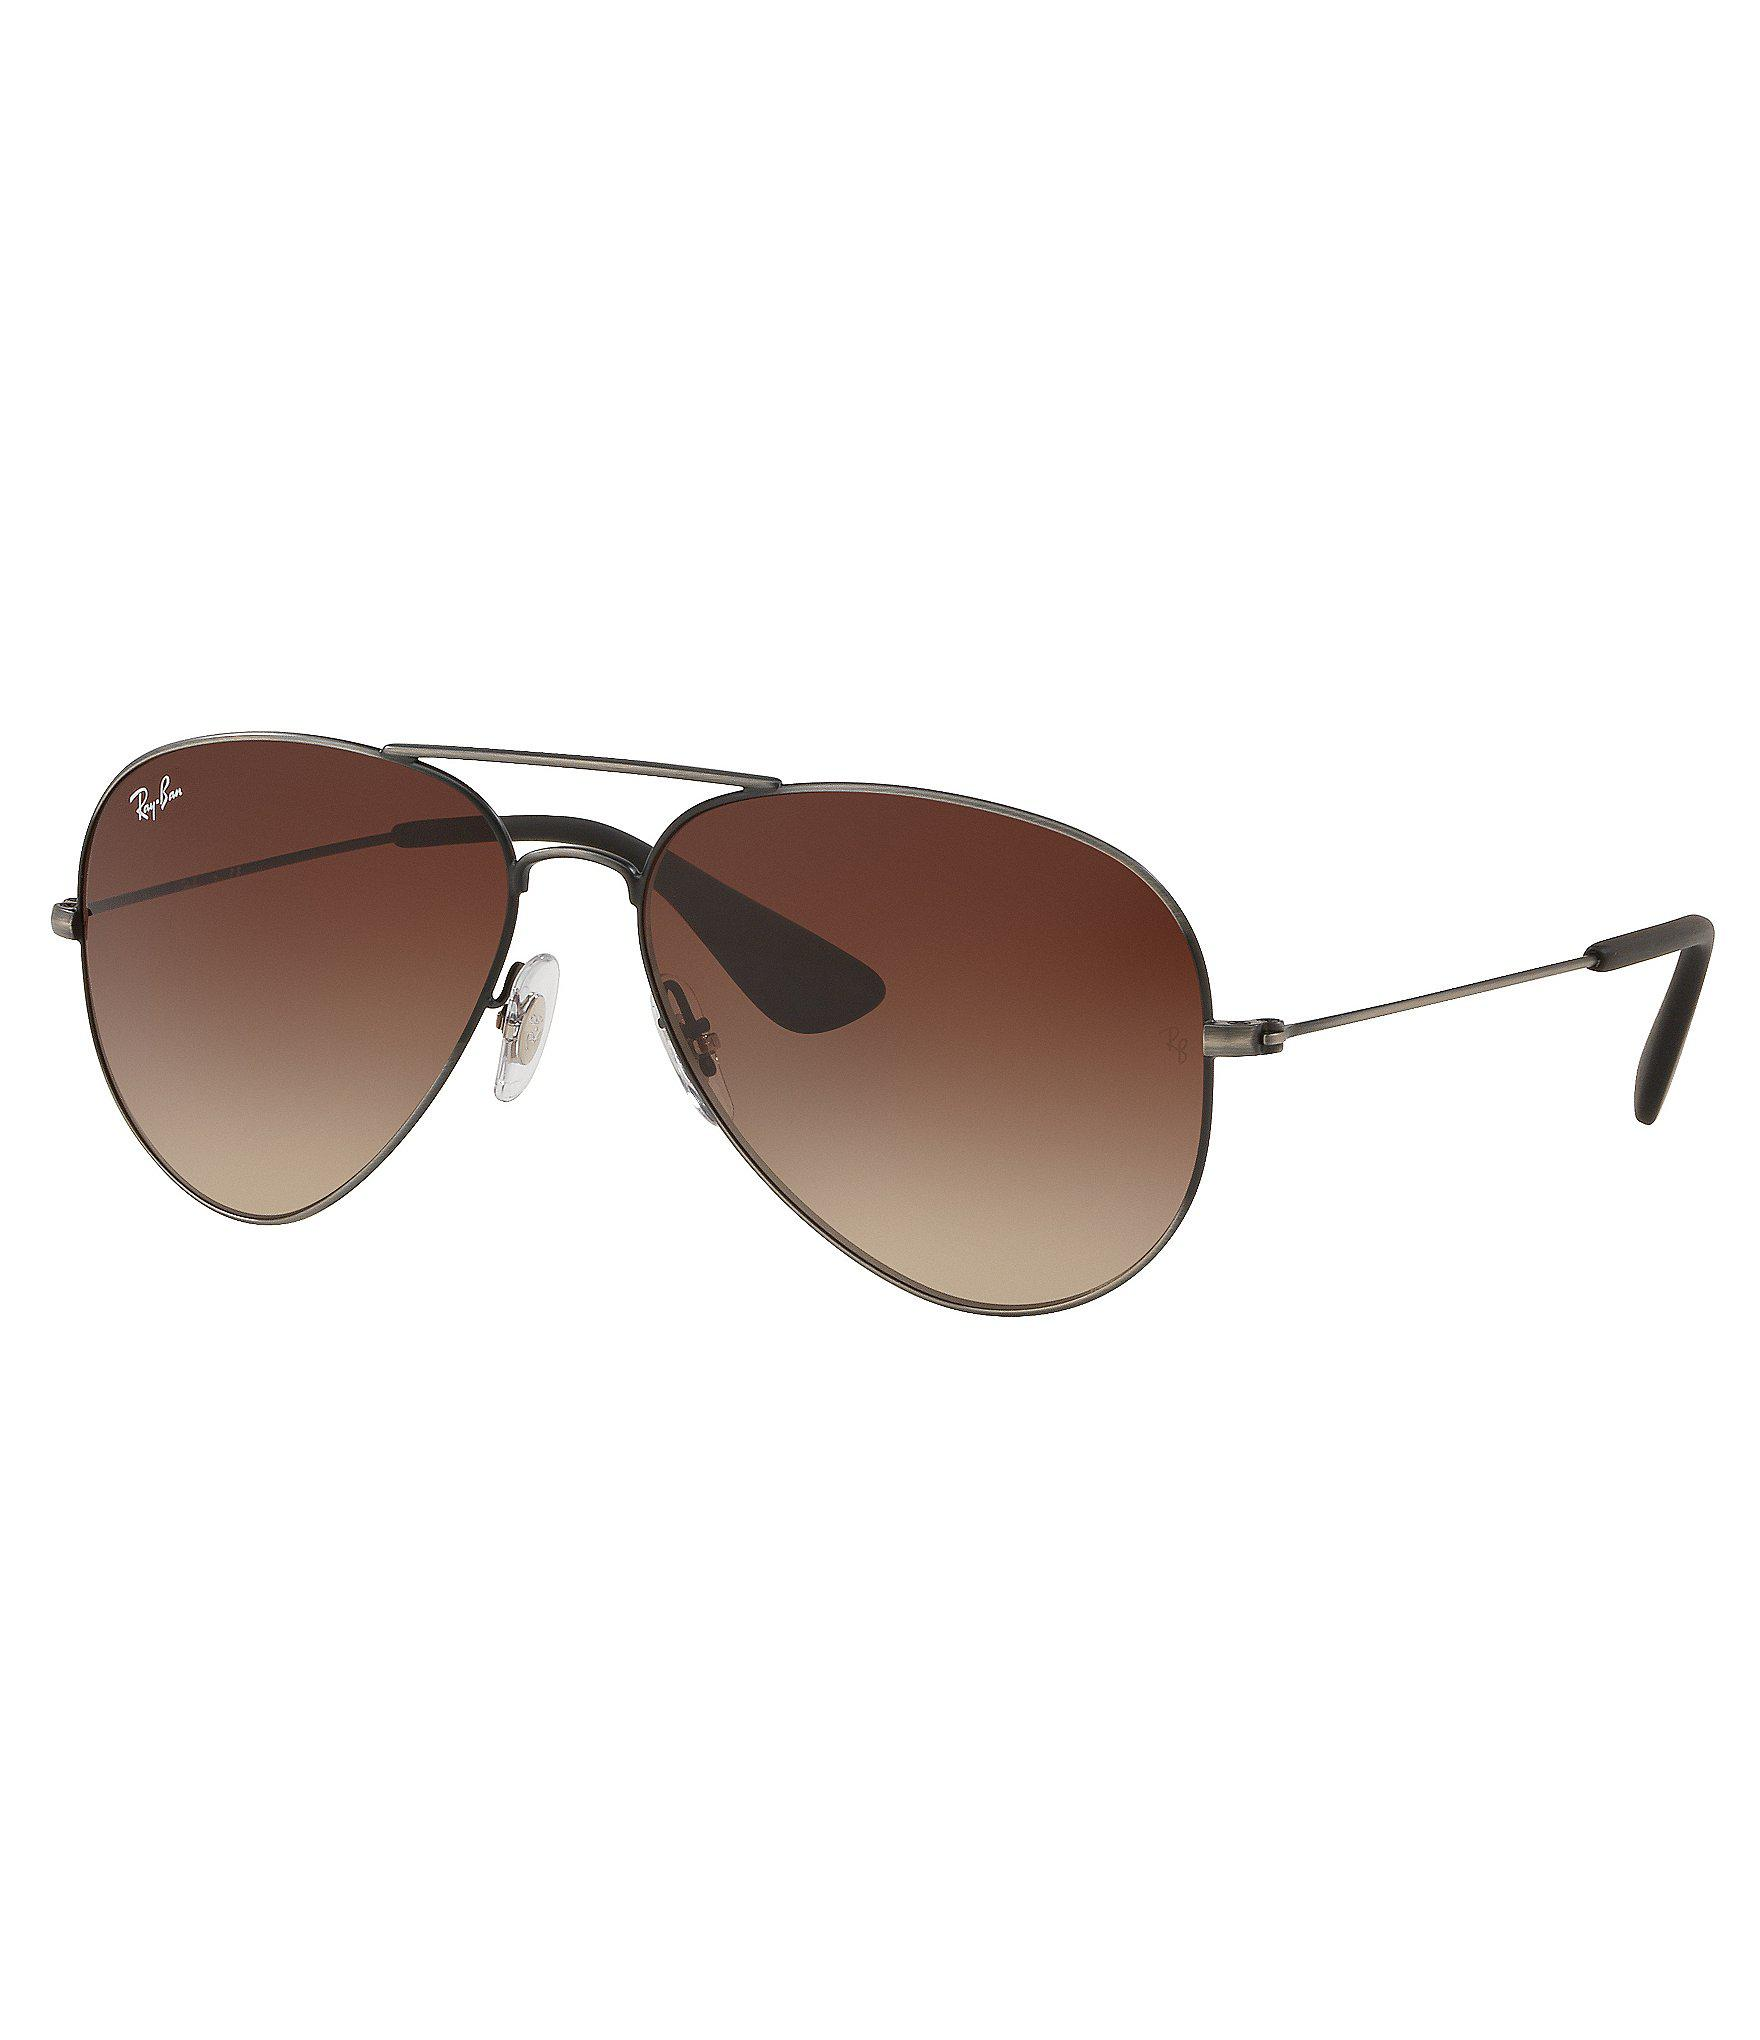 de2a65d014a Lyst - Ray-Ban Aviator Gradient Lens Sunglasses in Brown for Men